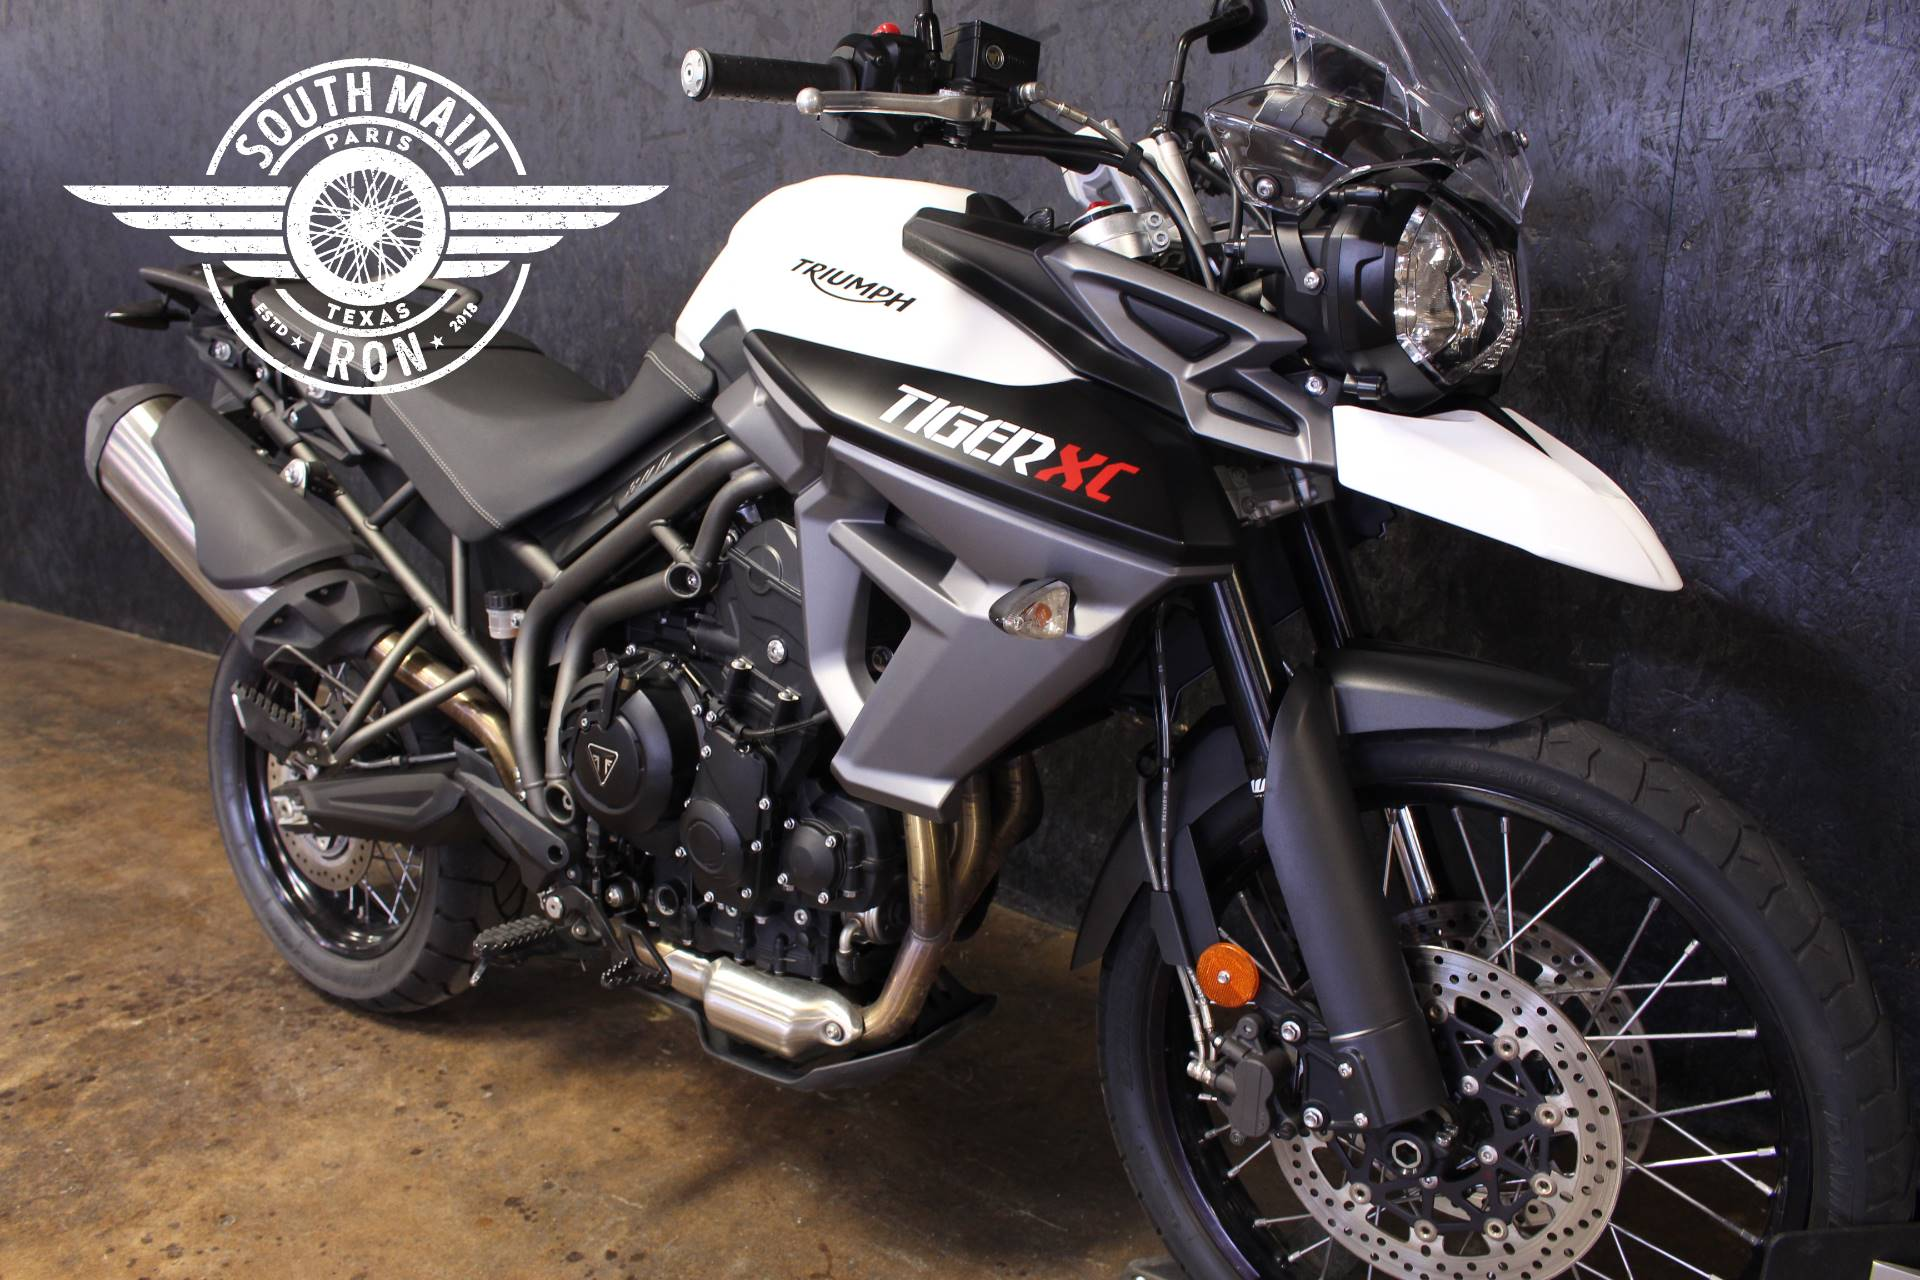 2016 Triumph Tiger 800 XC in Paris, Texas - Photo 4